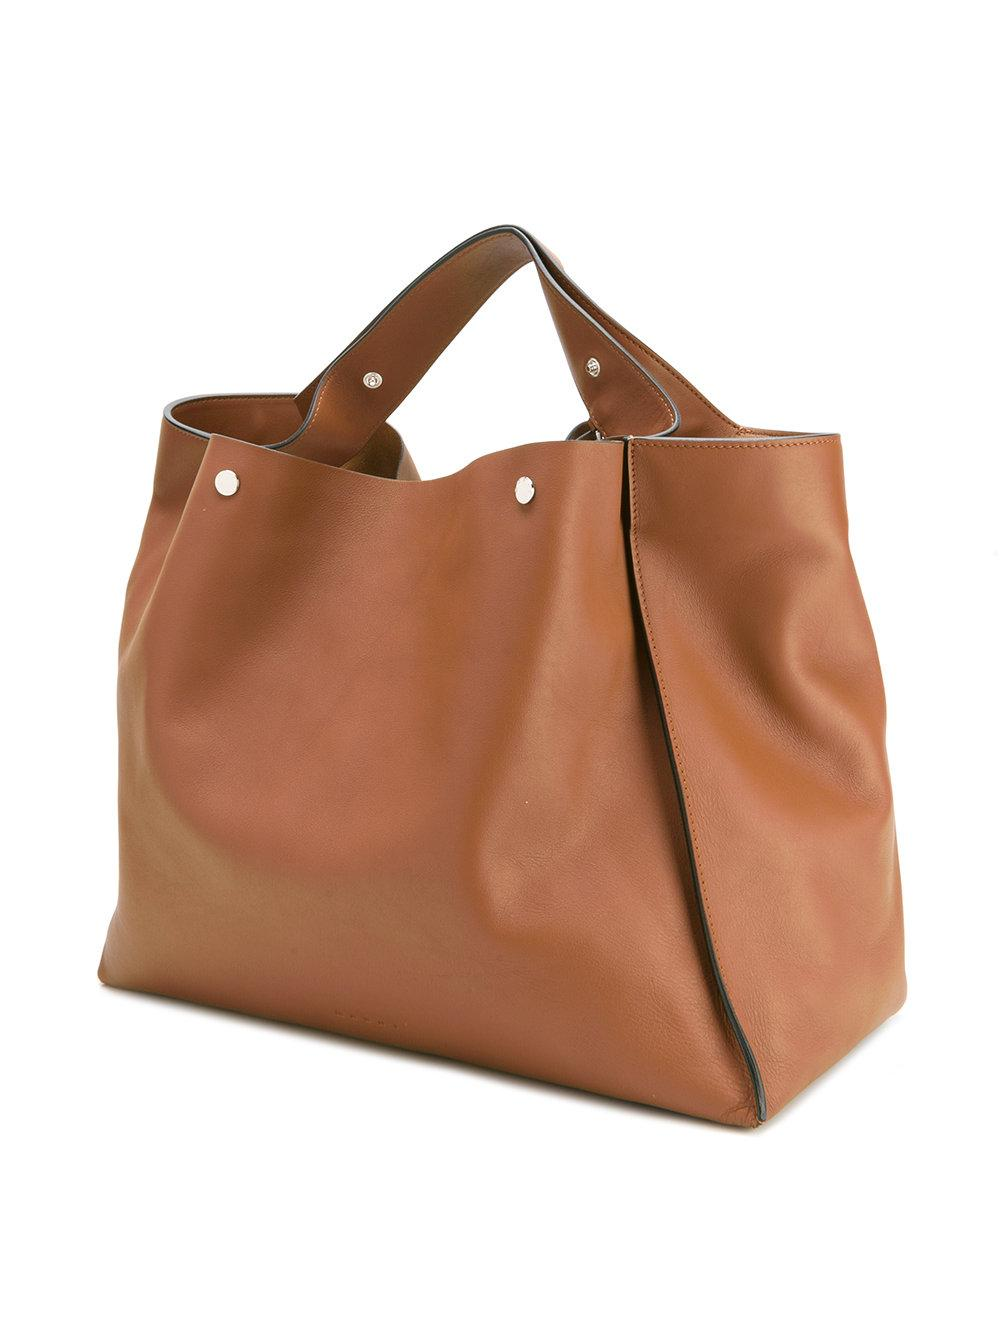 Marni Leather Voile Tote in Brown